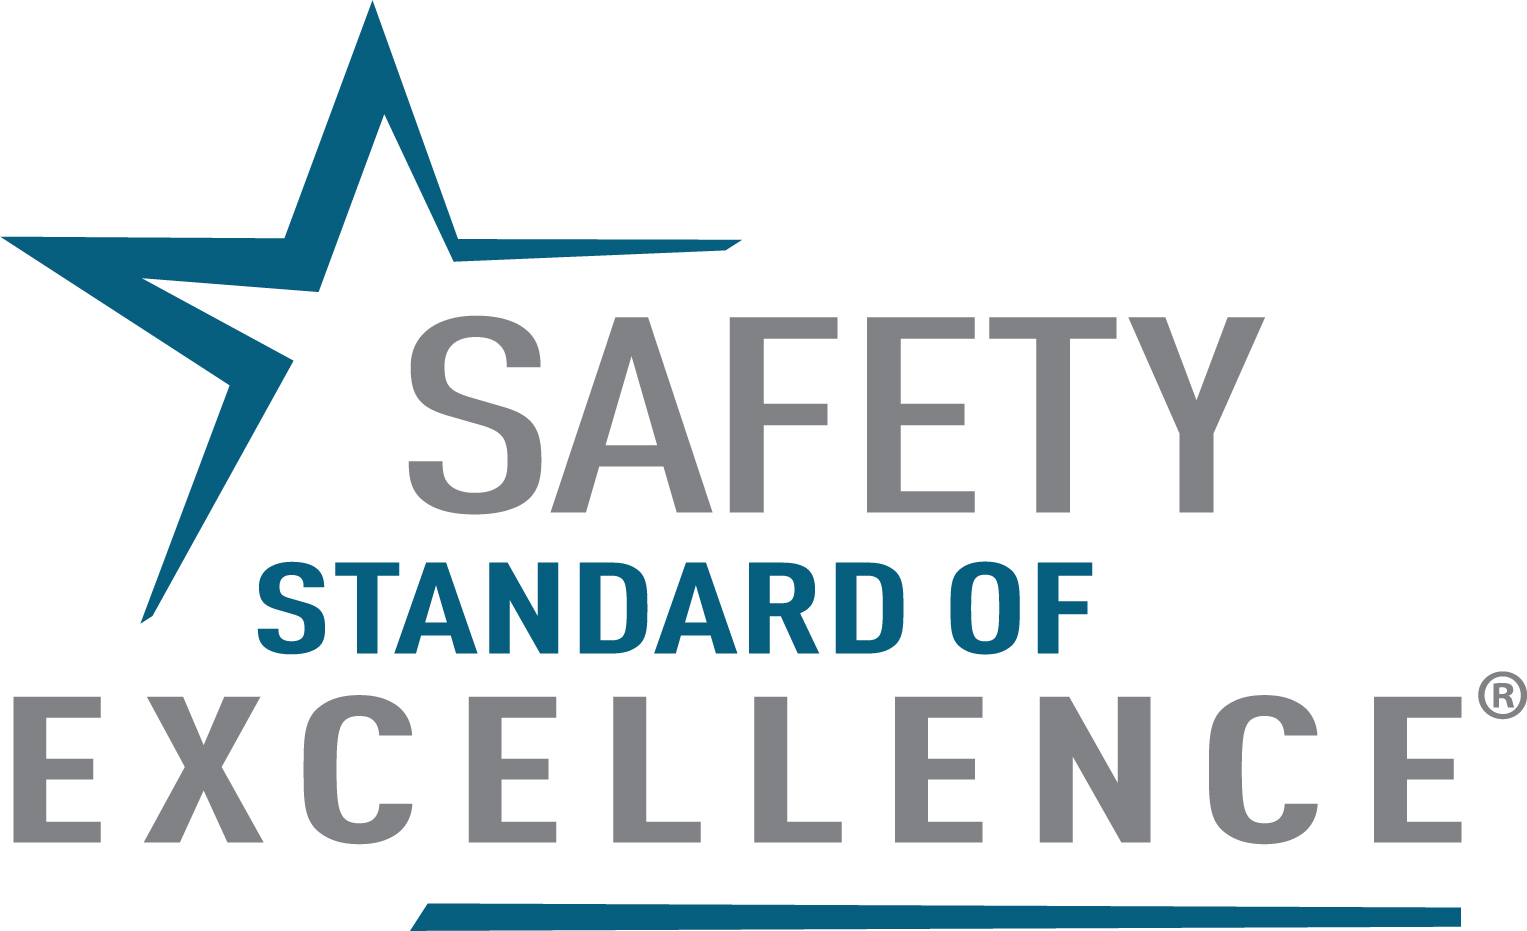 Safety Standard Of Excellence Program American Staffing Association